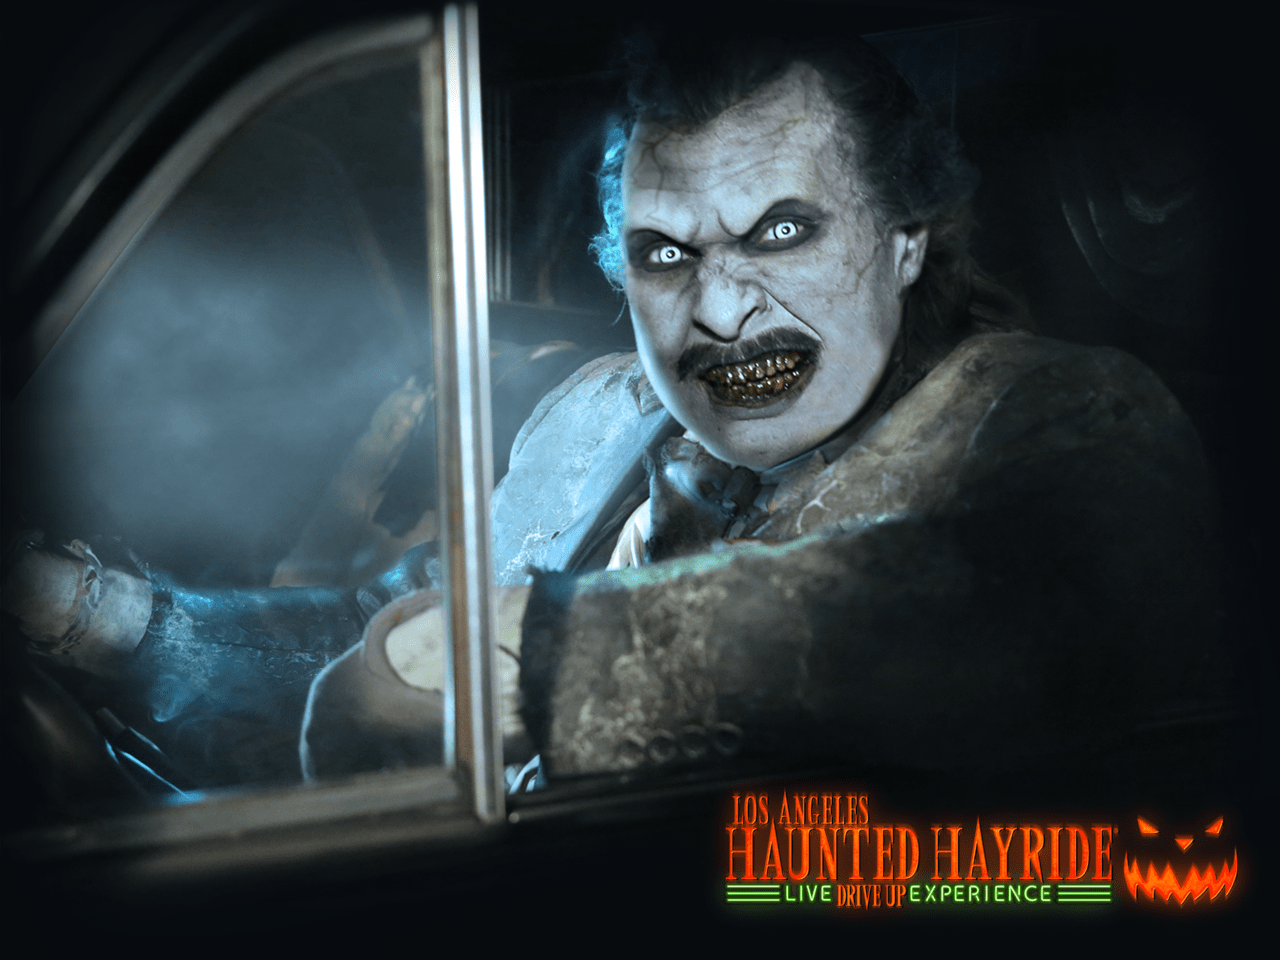 Los Angeles Haunted Hayride, Los Angeles Haunted Hayride: Live Drive-Up Experience, Halloween